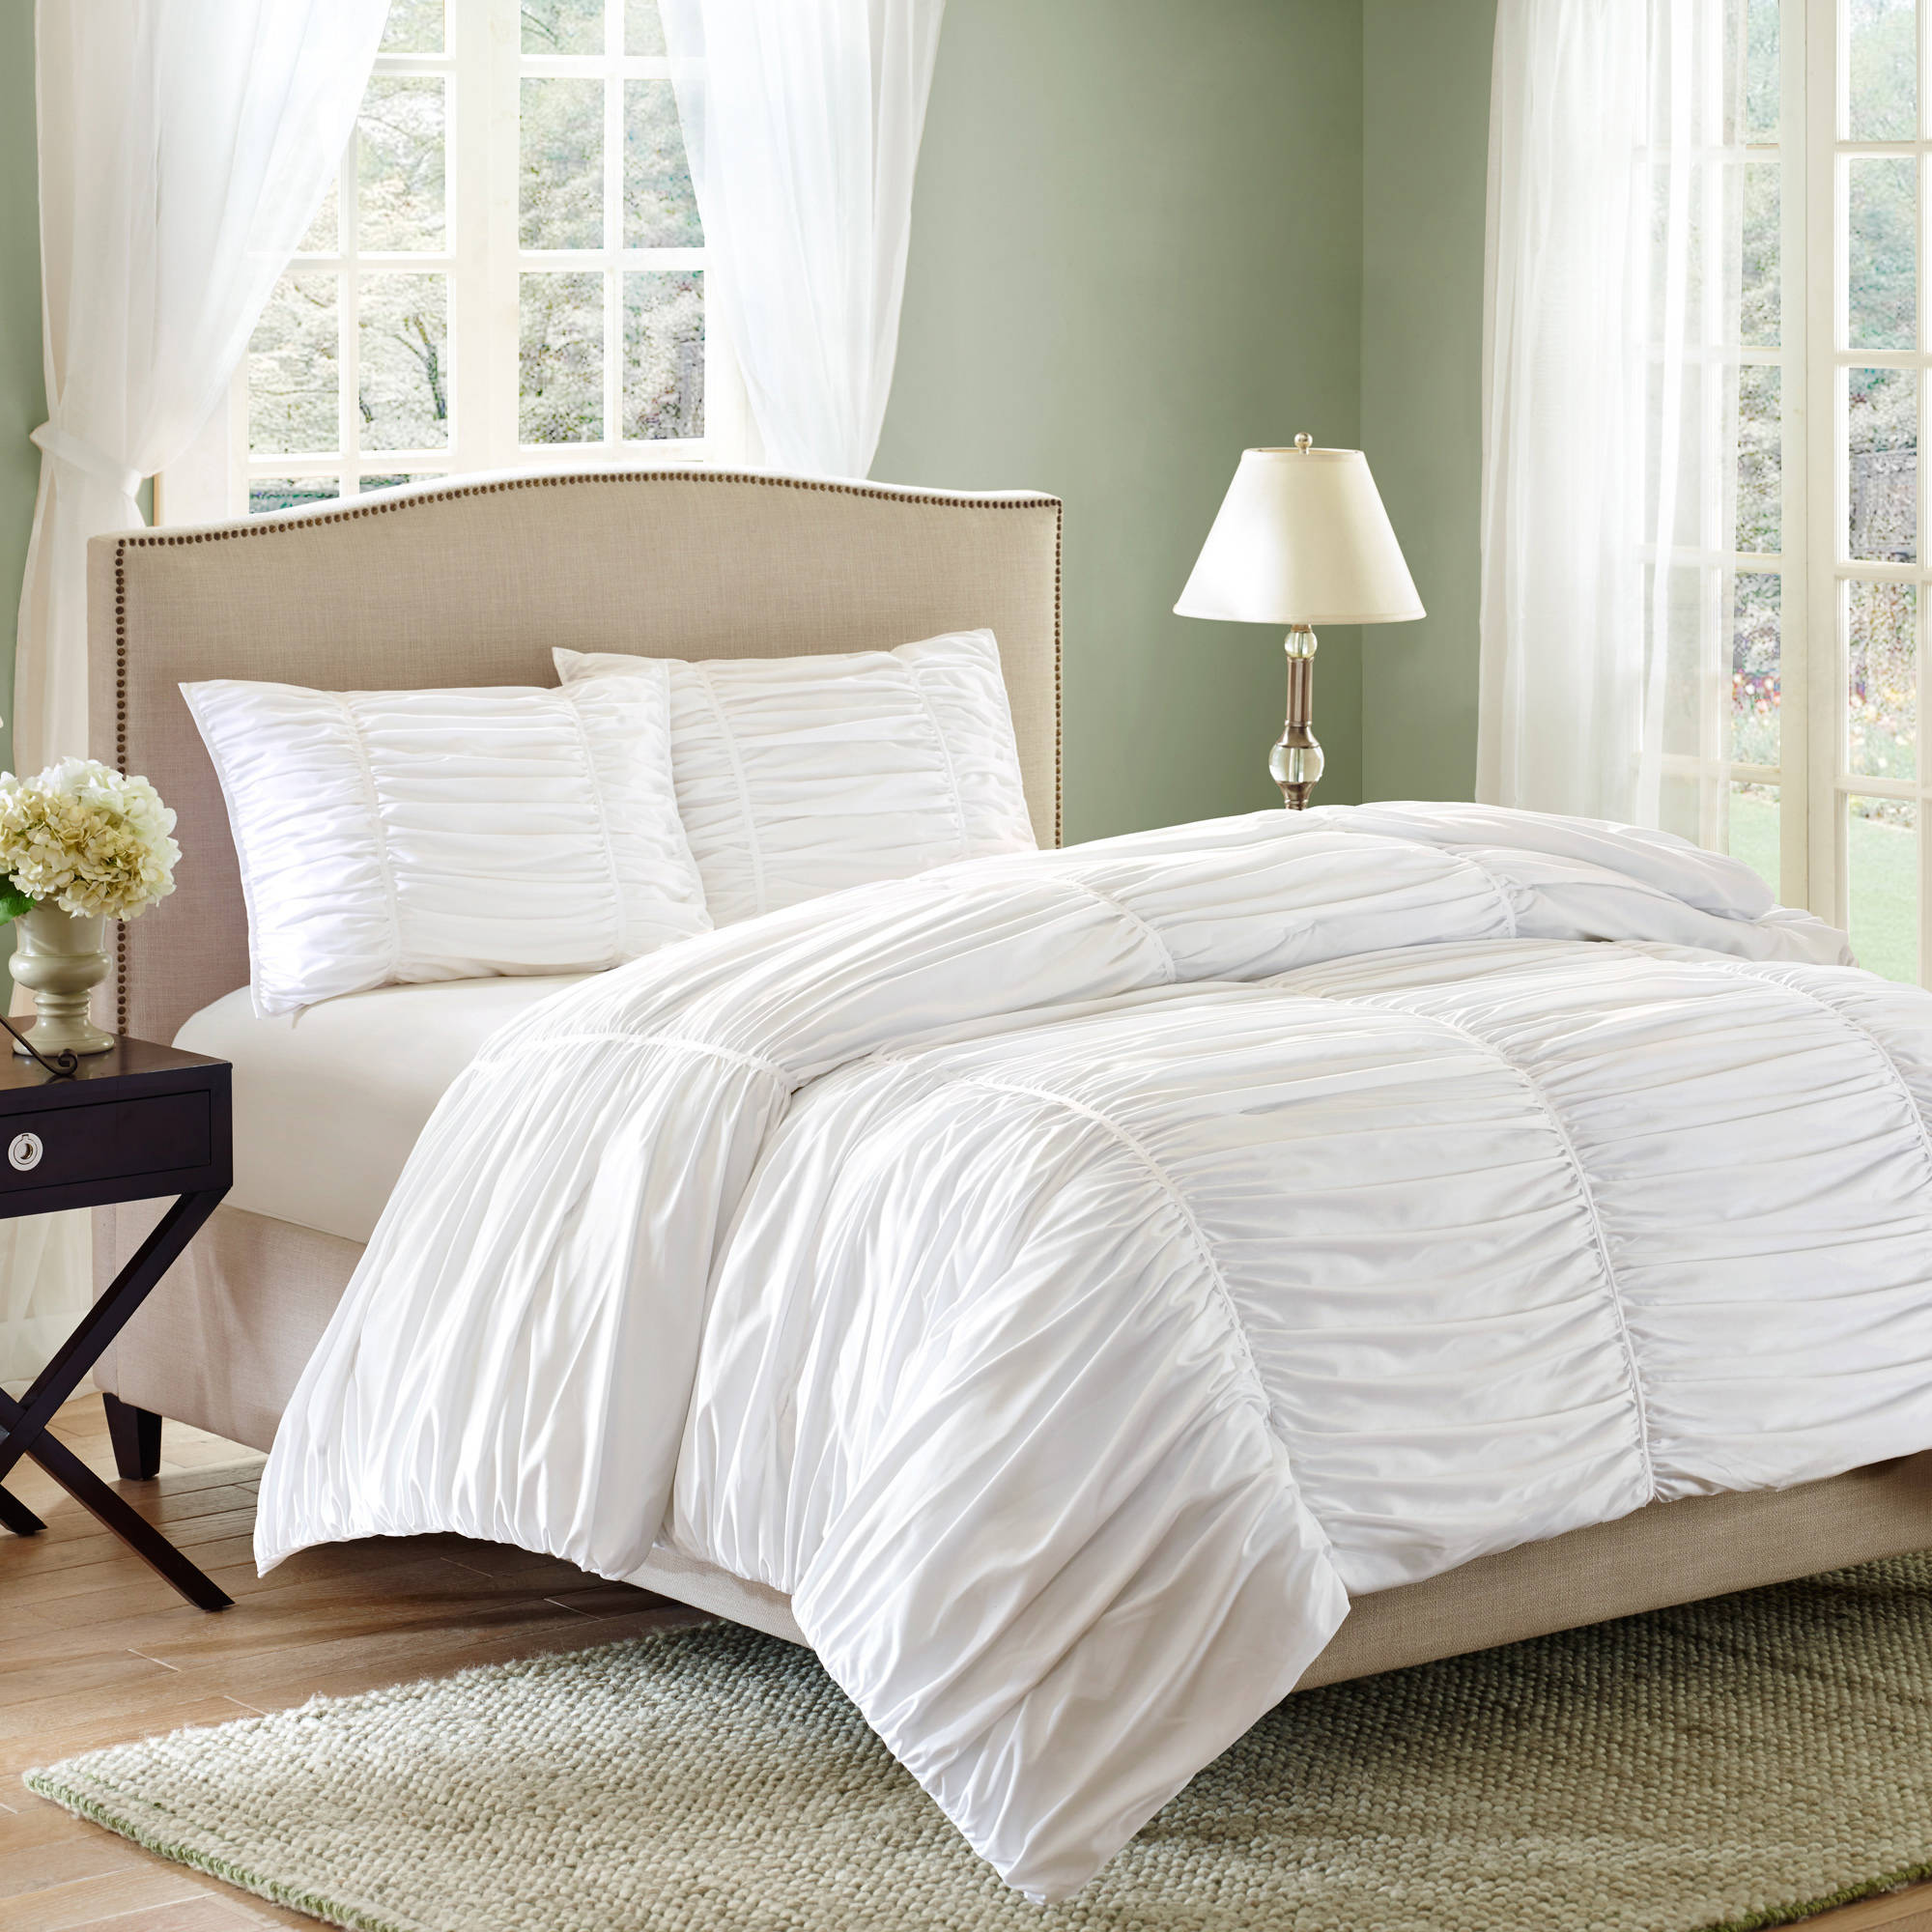 Better Homes and Gardens Ruched 3 Piece Bedding Comforter Mini Set